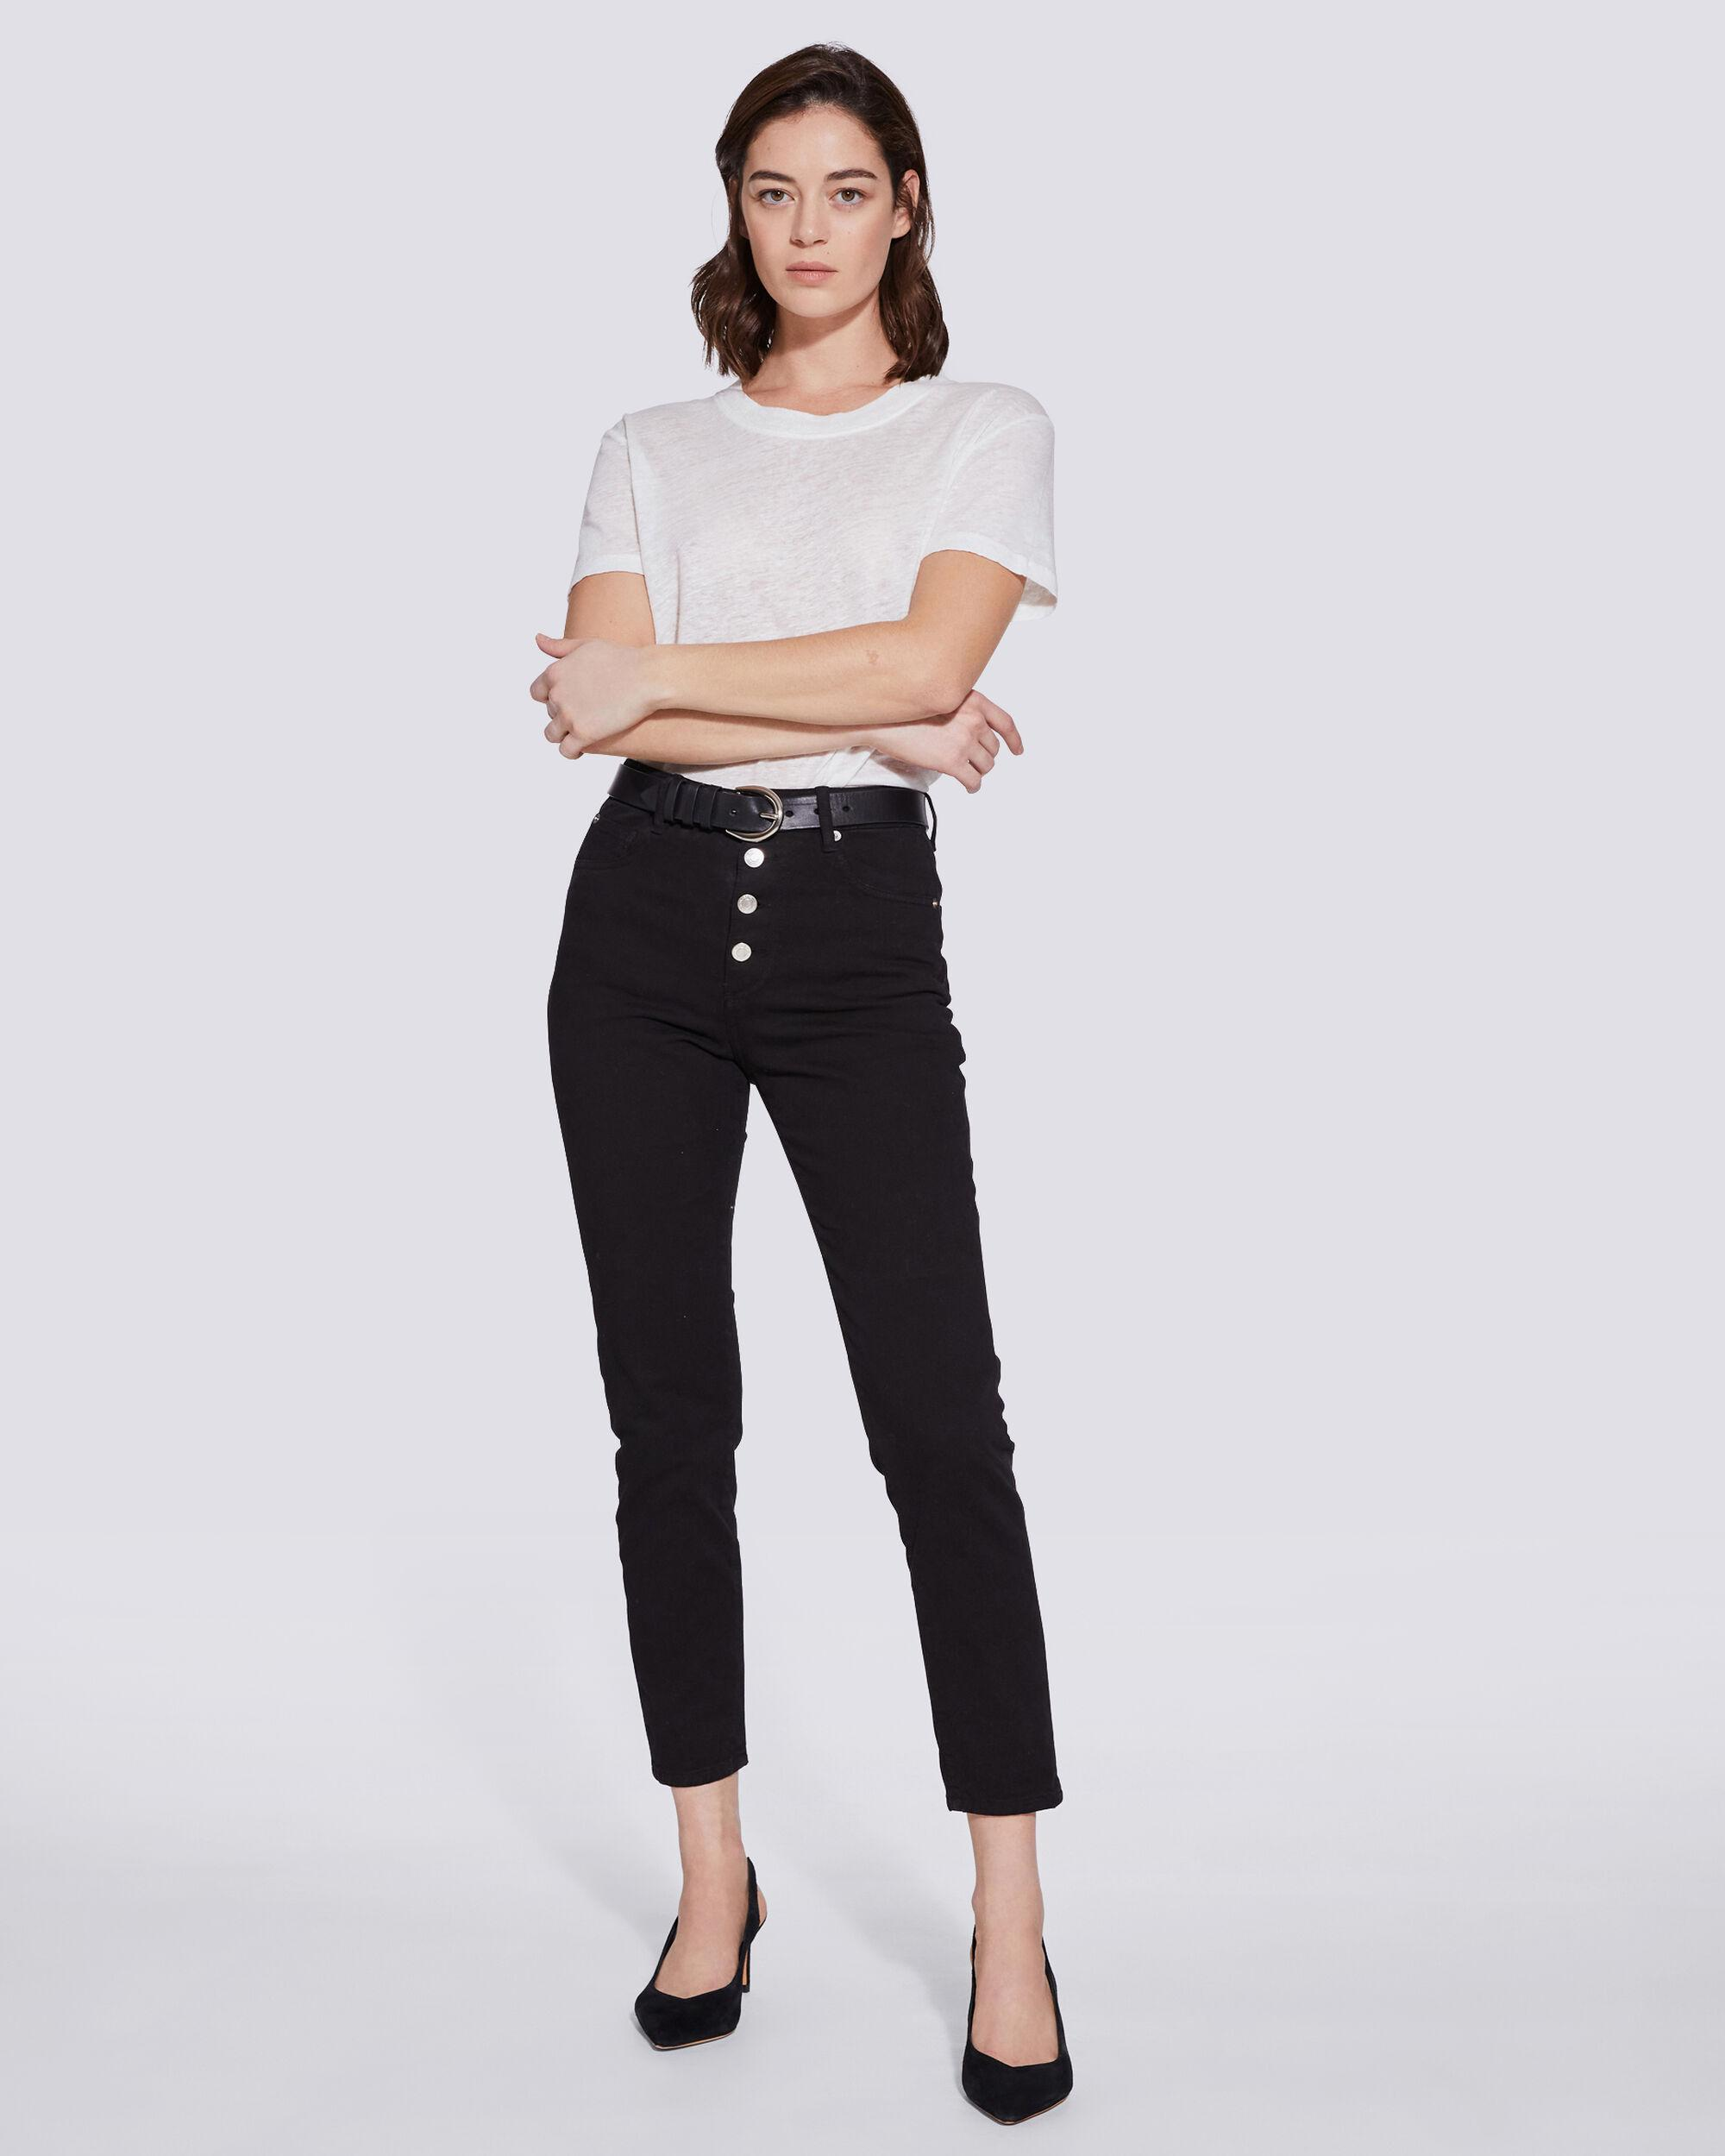 ESME HIGH RISE BUTTON FRONT CROPPED JEANS